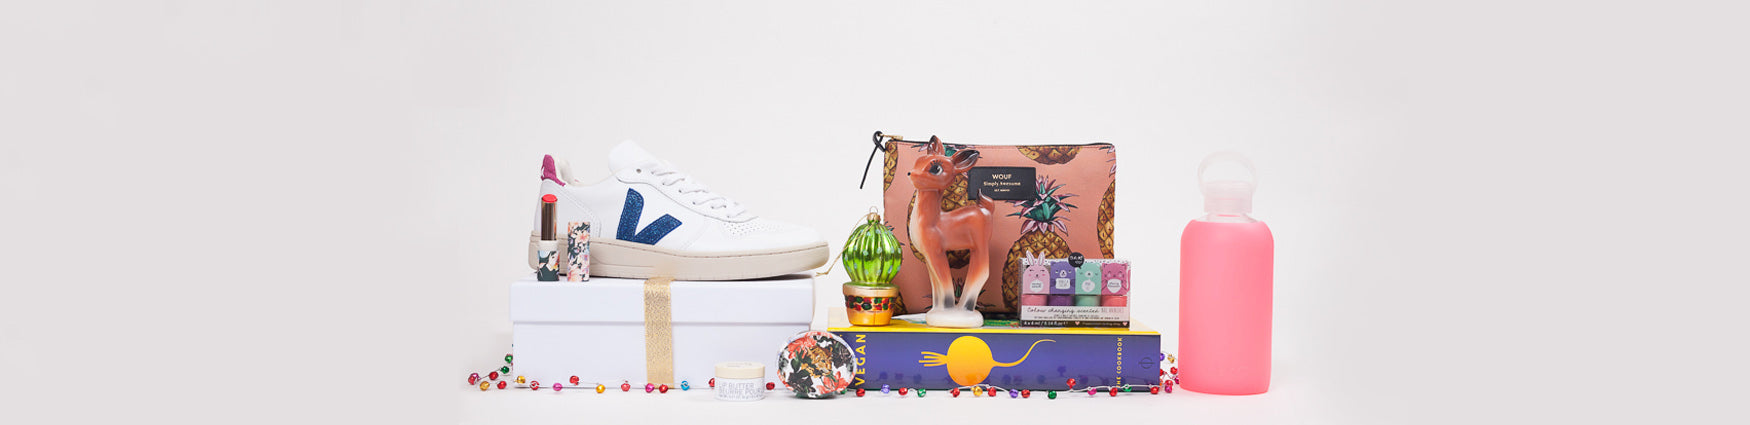 Colourful Christmas Gifts for Teens including Wouf, Bkr and Veja available from Roo's Beach UK